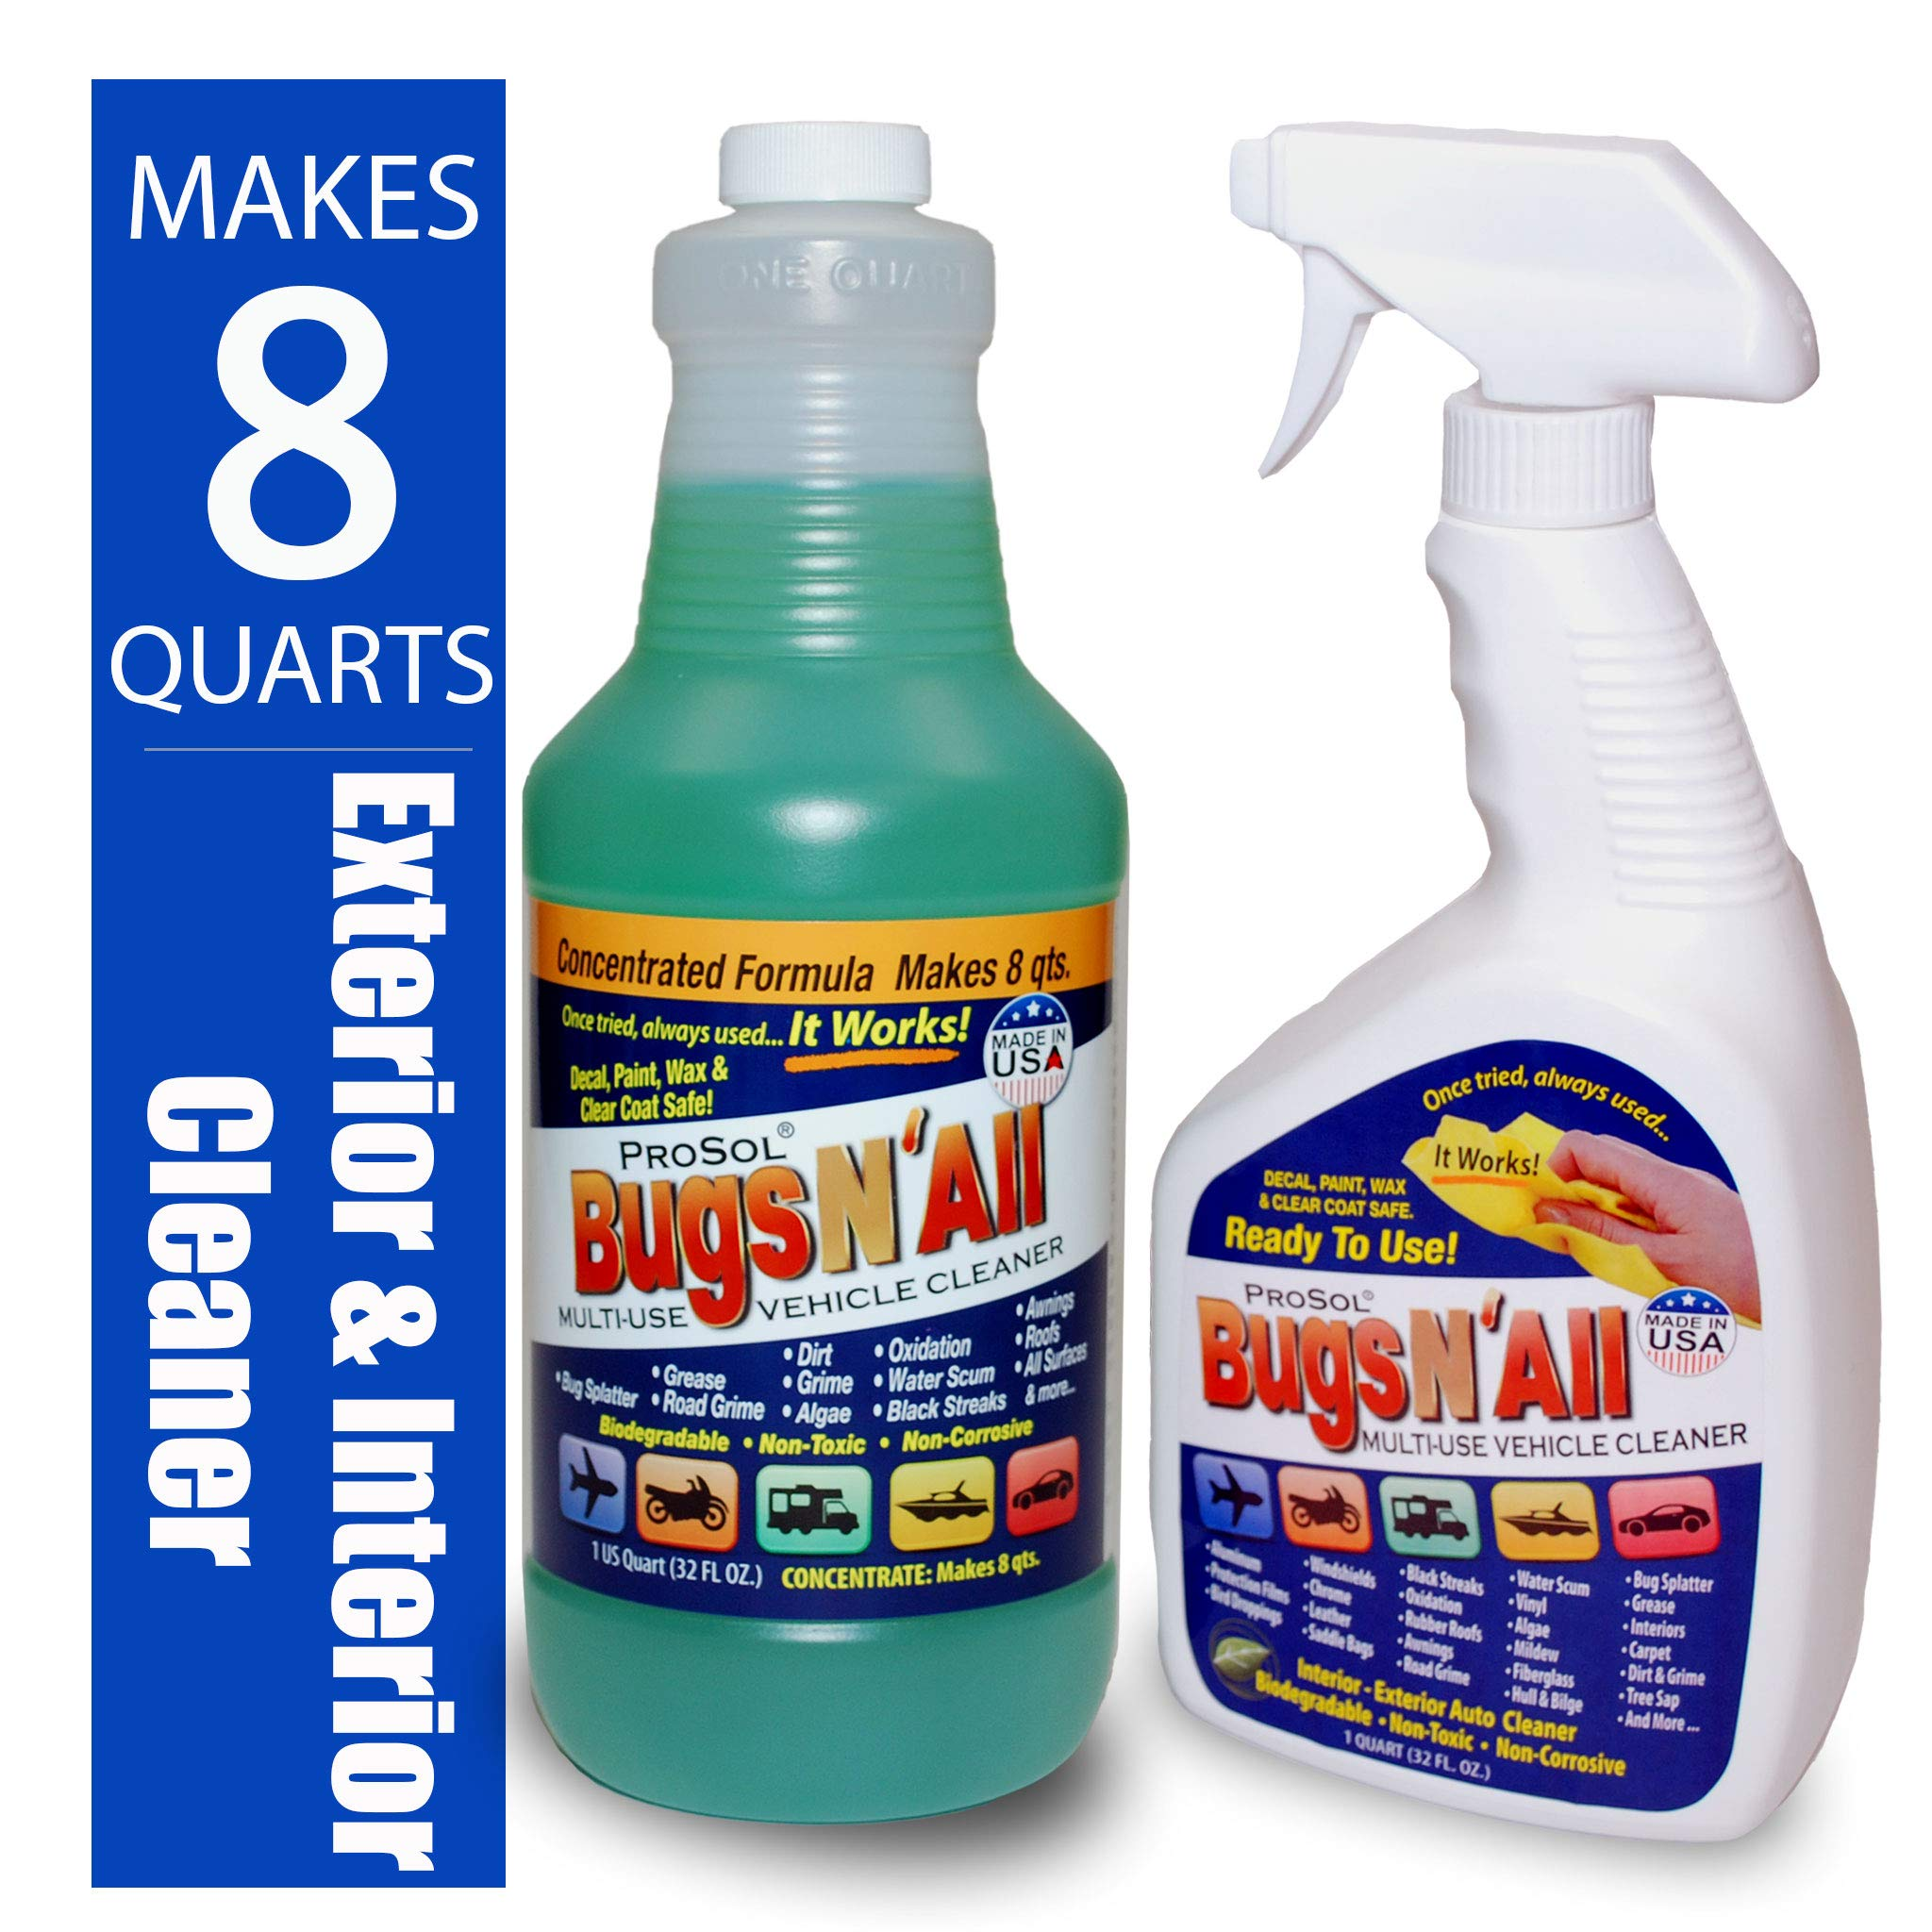 Bugs N All - Multi-Surface Vehicle Cleaner/Bug Remover. 1qt. Concentrate Makes 8 Quarts. Includes an Empty 1 Qt. Spray Bottle - Safe on Wax, Clear Coat, Paint, Decals and on All Surfaces. by ProSol (Image #1)